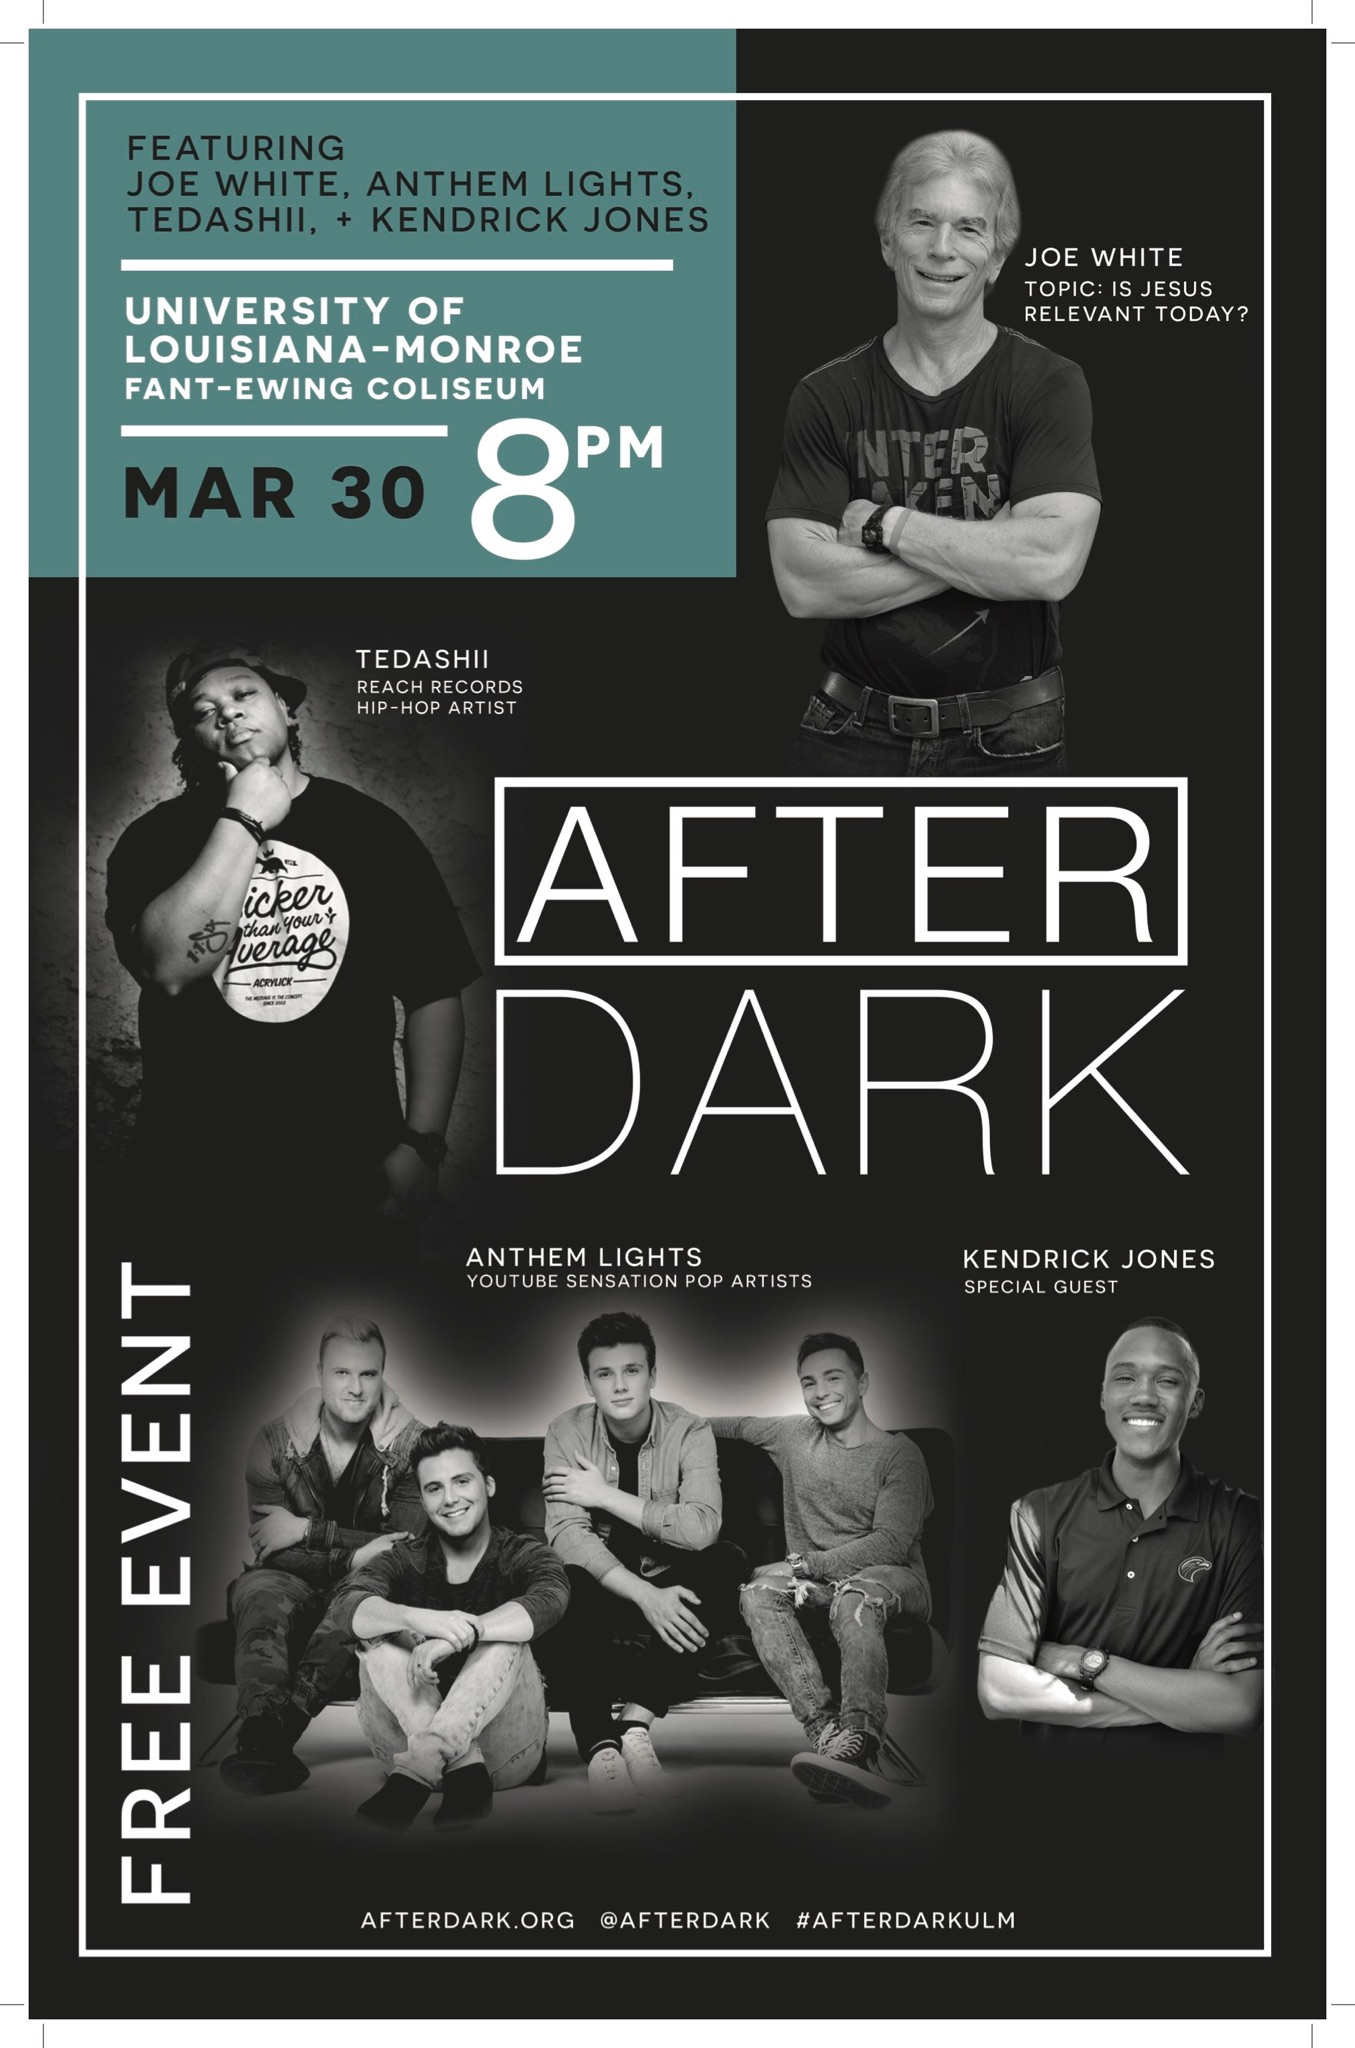 AfterDark with Tedashii & Joe White!